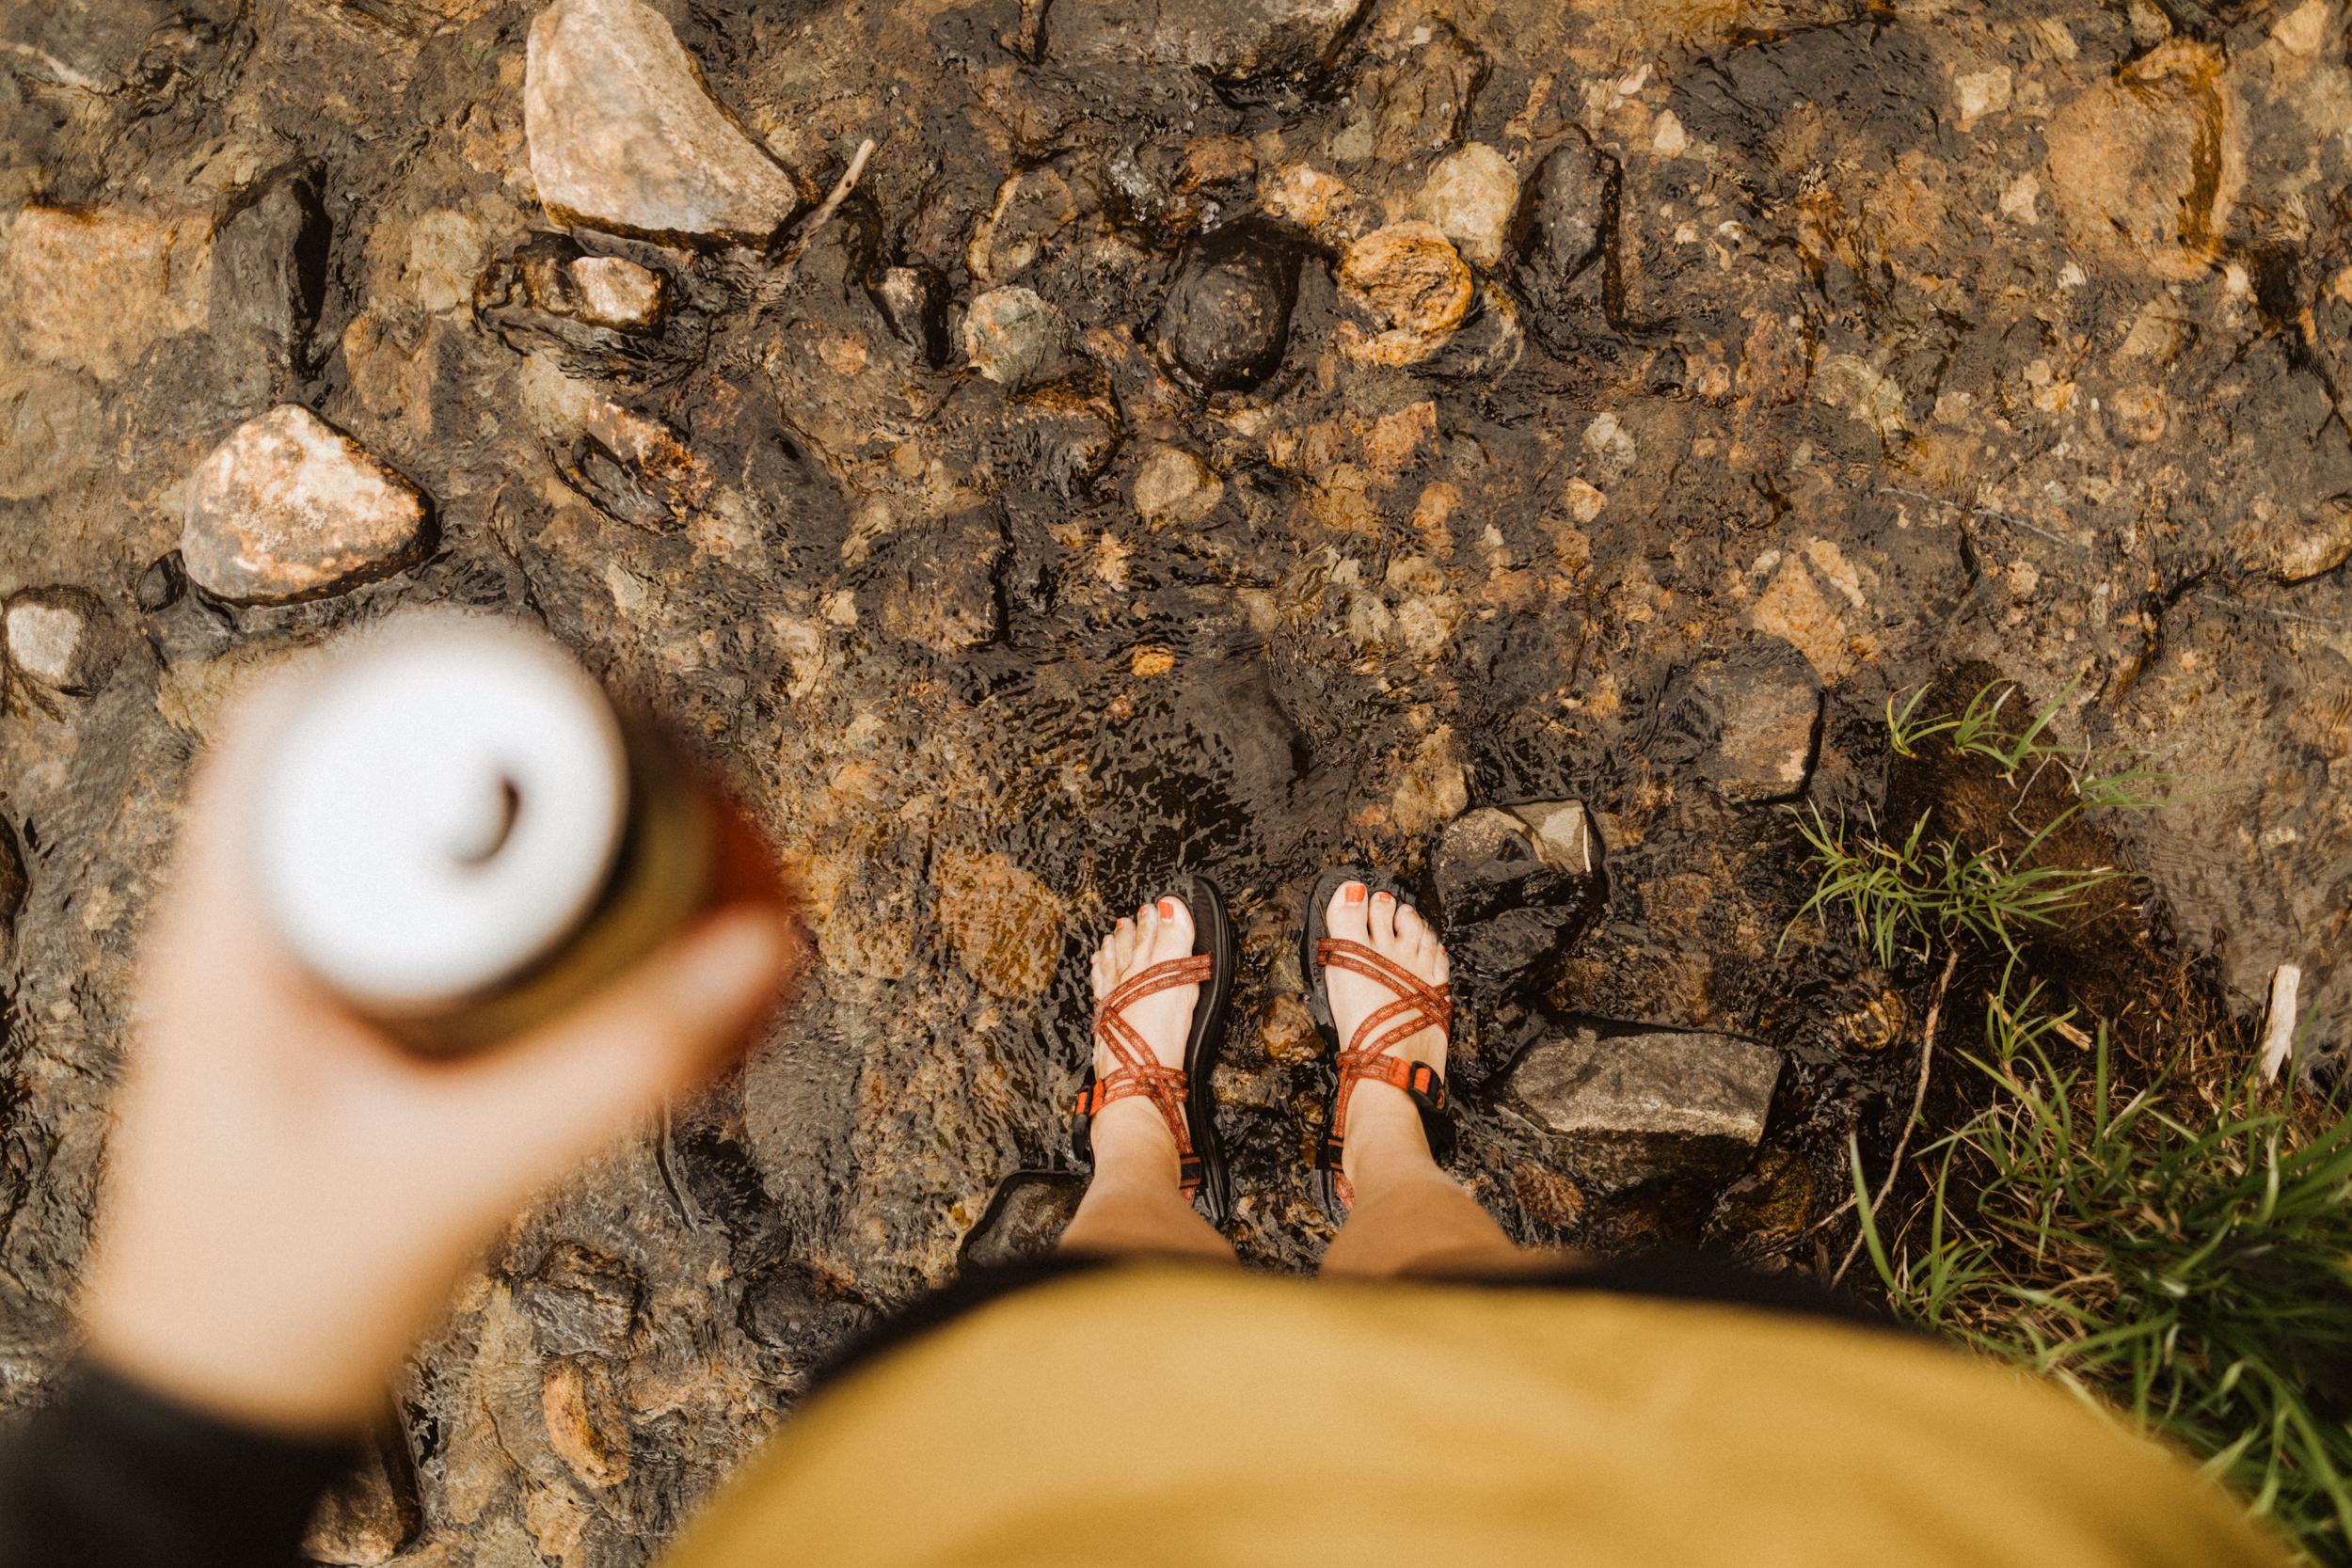 10 Best Items for Camping - Chaco's